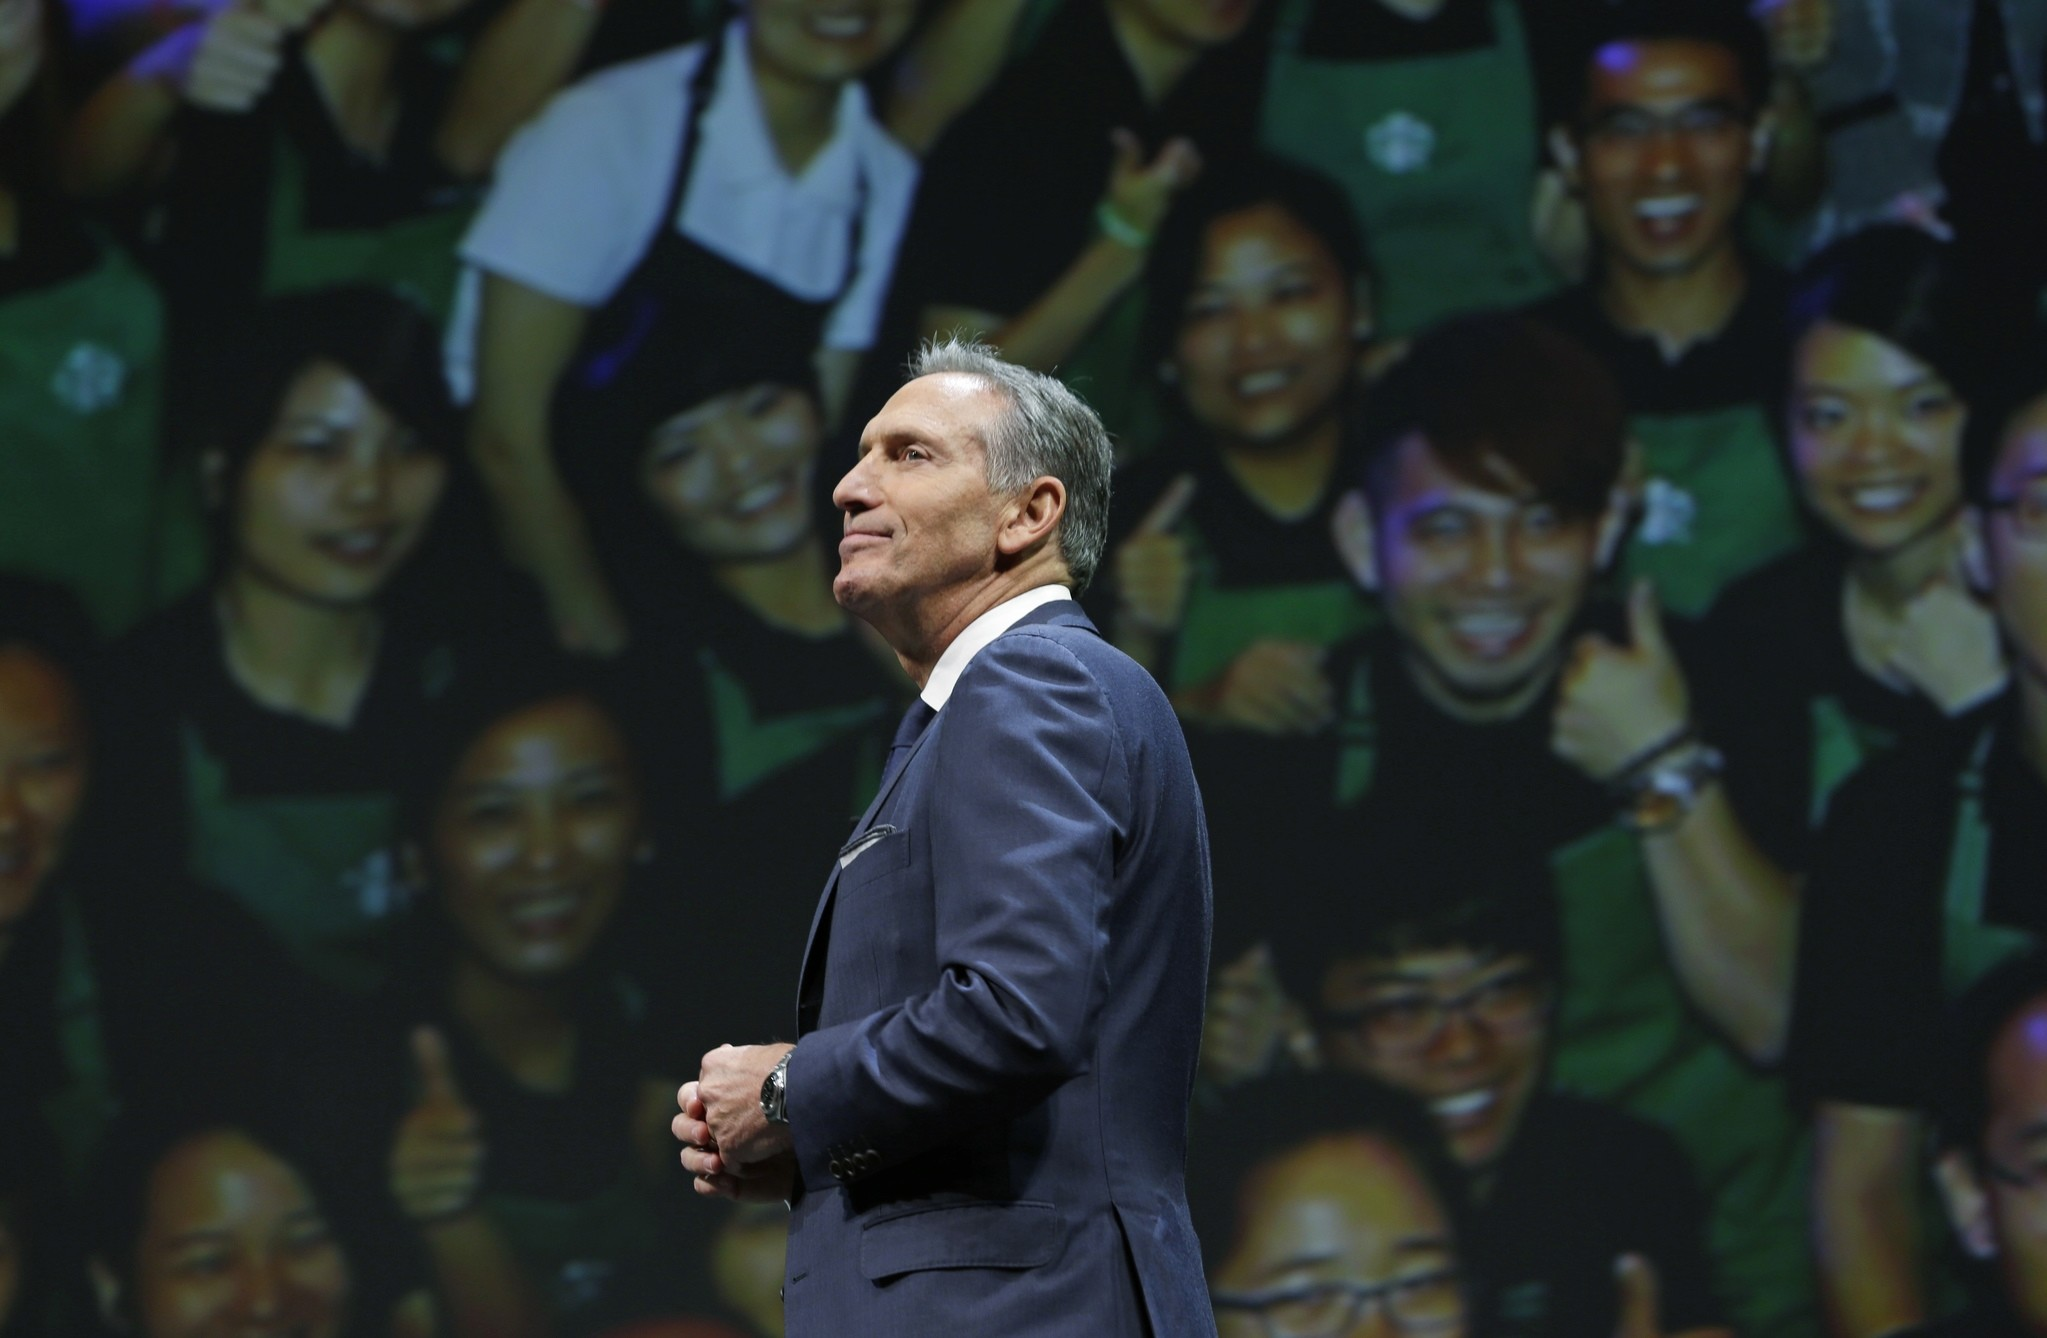 Starbucks CEO Howard Schultz walks in front of a photo of Starbucks baristas, at the coffee company's annual shareholders meeting in Seattle. (AP Photo)